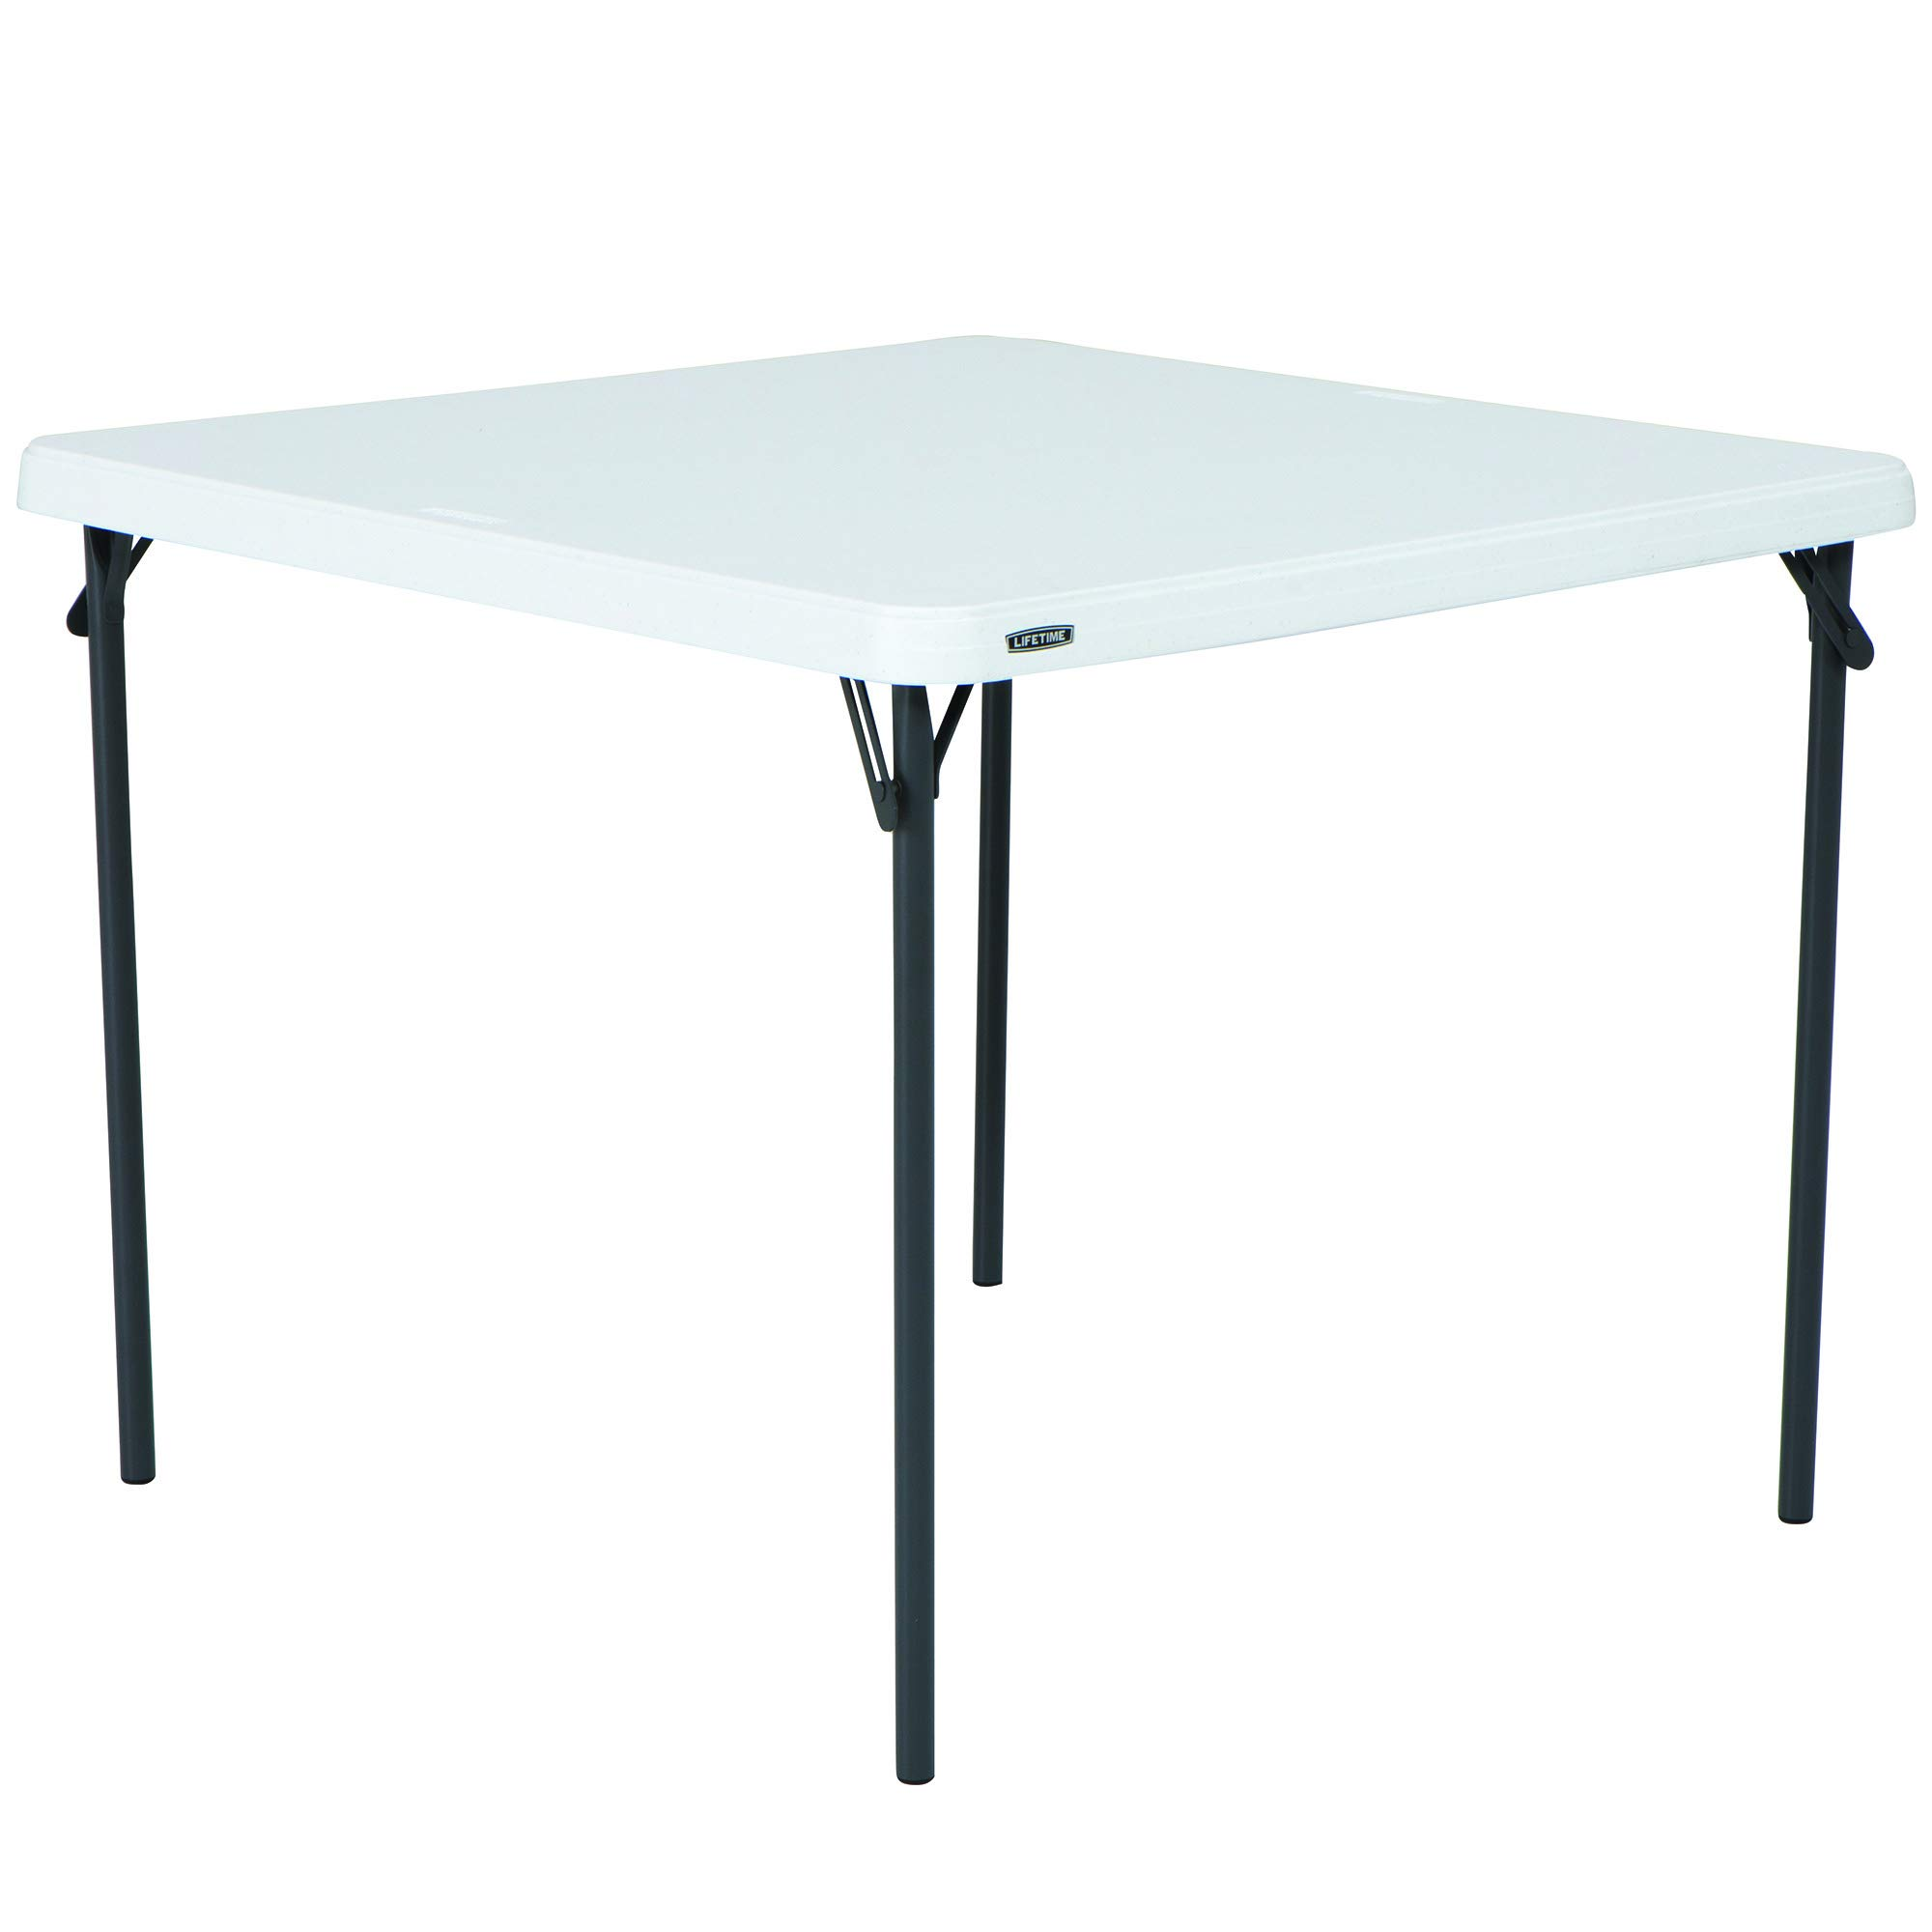 Lifetime 80783 37-Inch Commercial Grade Square Folding Table, White Granite by Lifetime